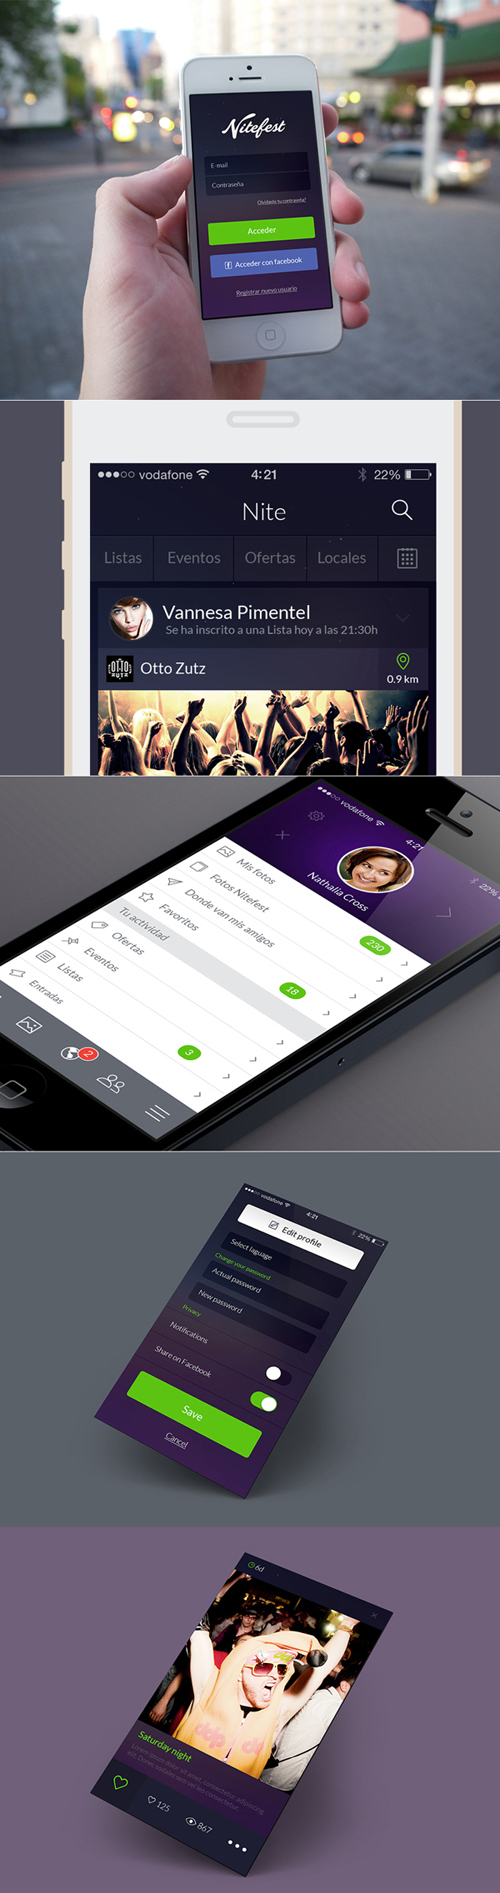 Amazing Mobile App UI Designs with Ultimate User Experience - 49